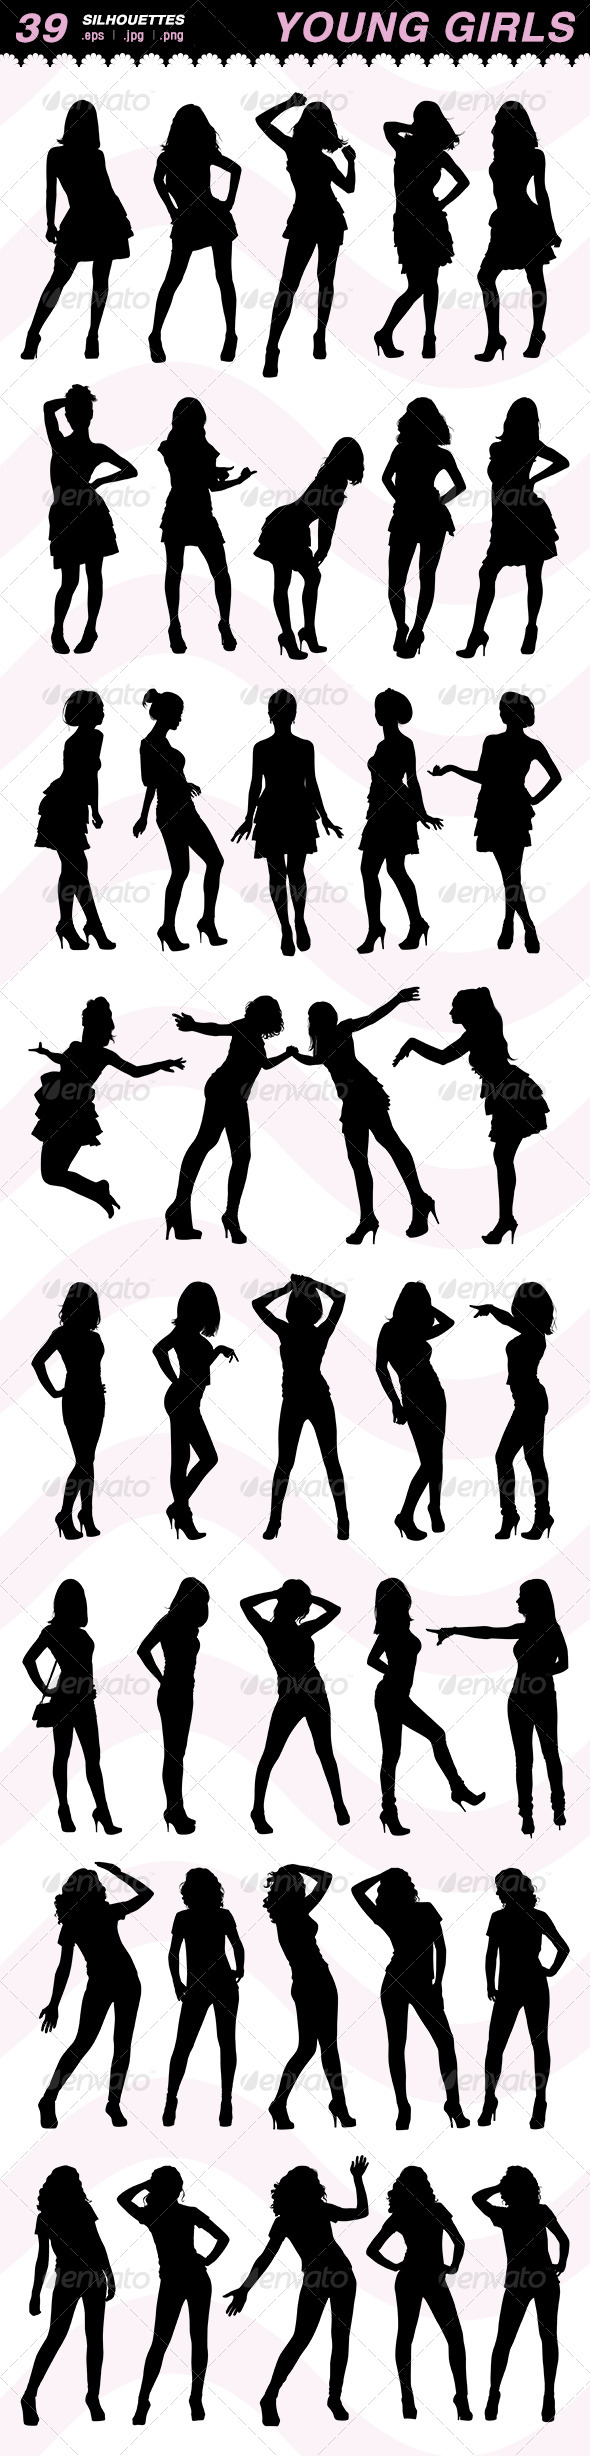 GraphicRiver Silhouettes of Young Girls 6854175